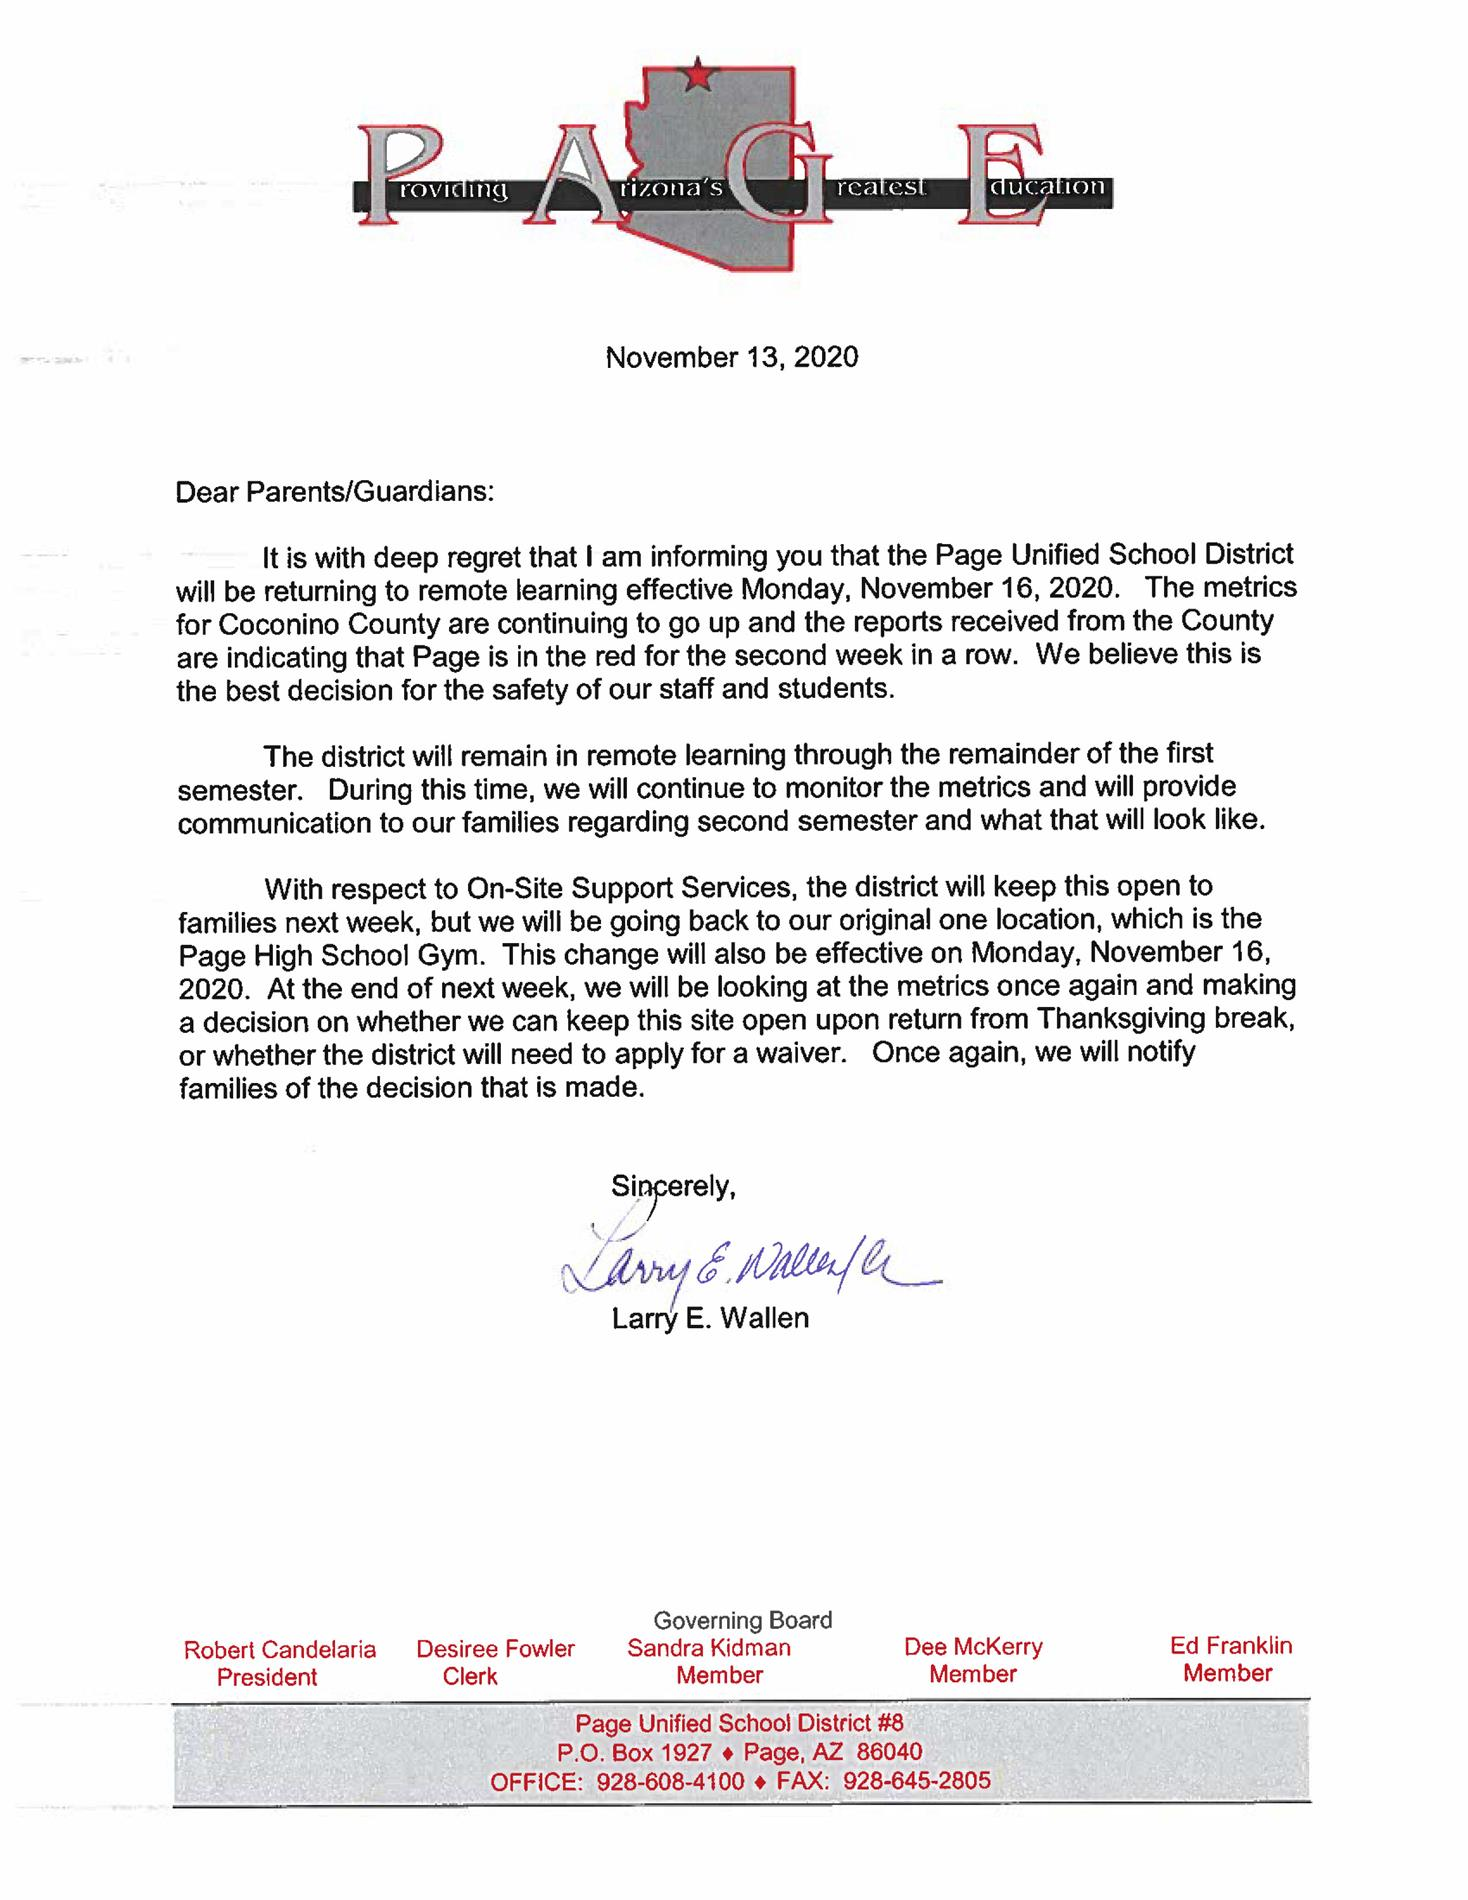 Supt. Wallen's letter regarding PUSD's return to remote learning